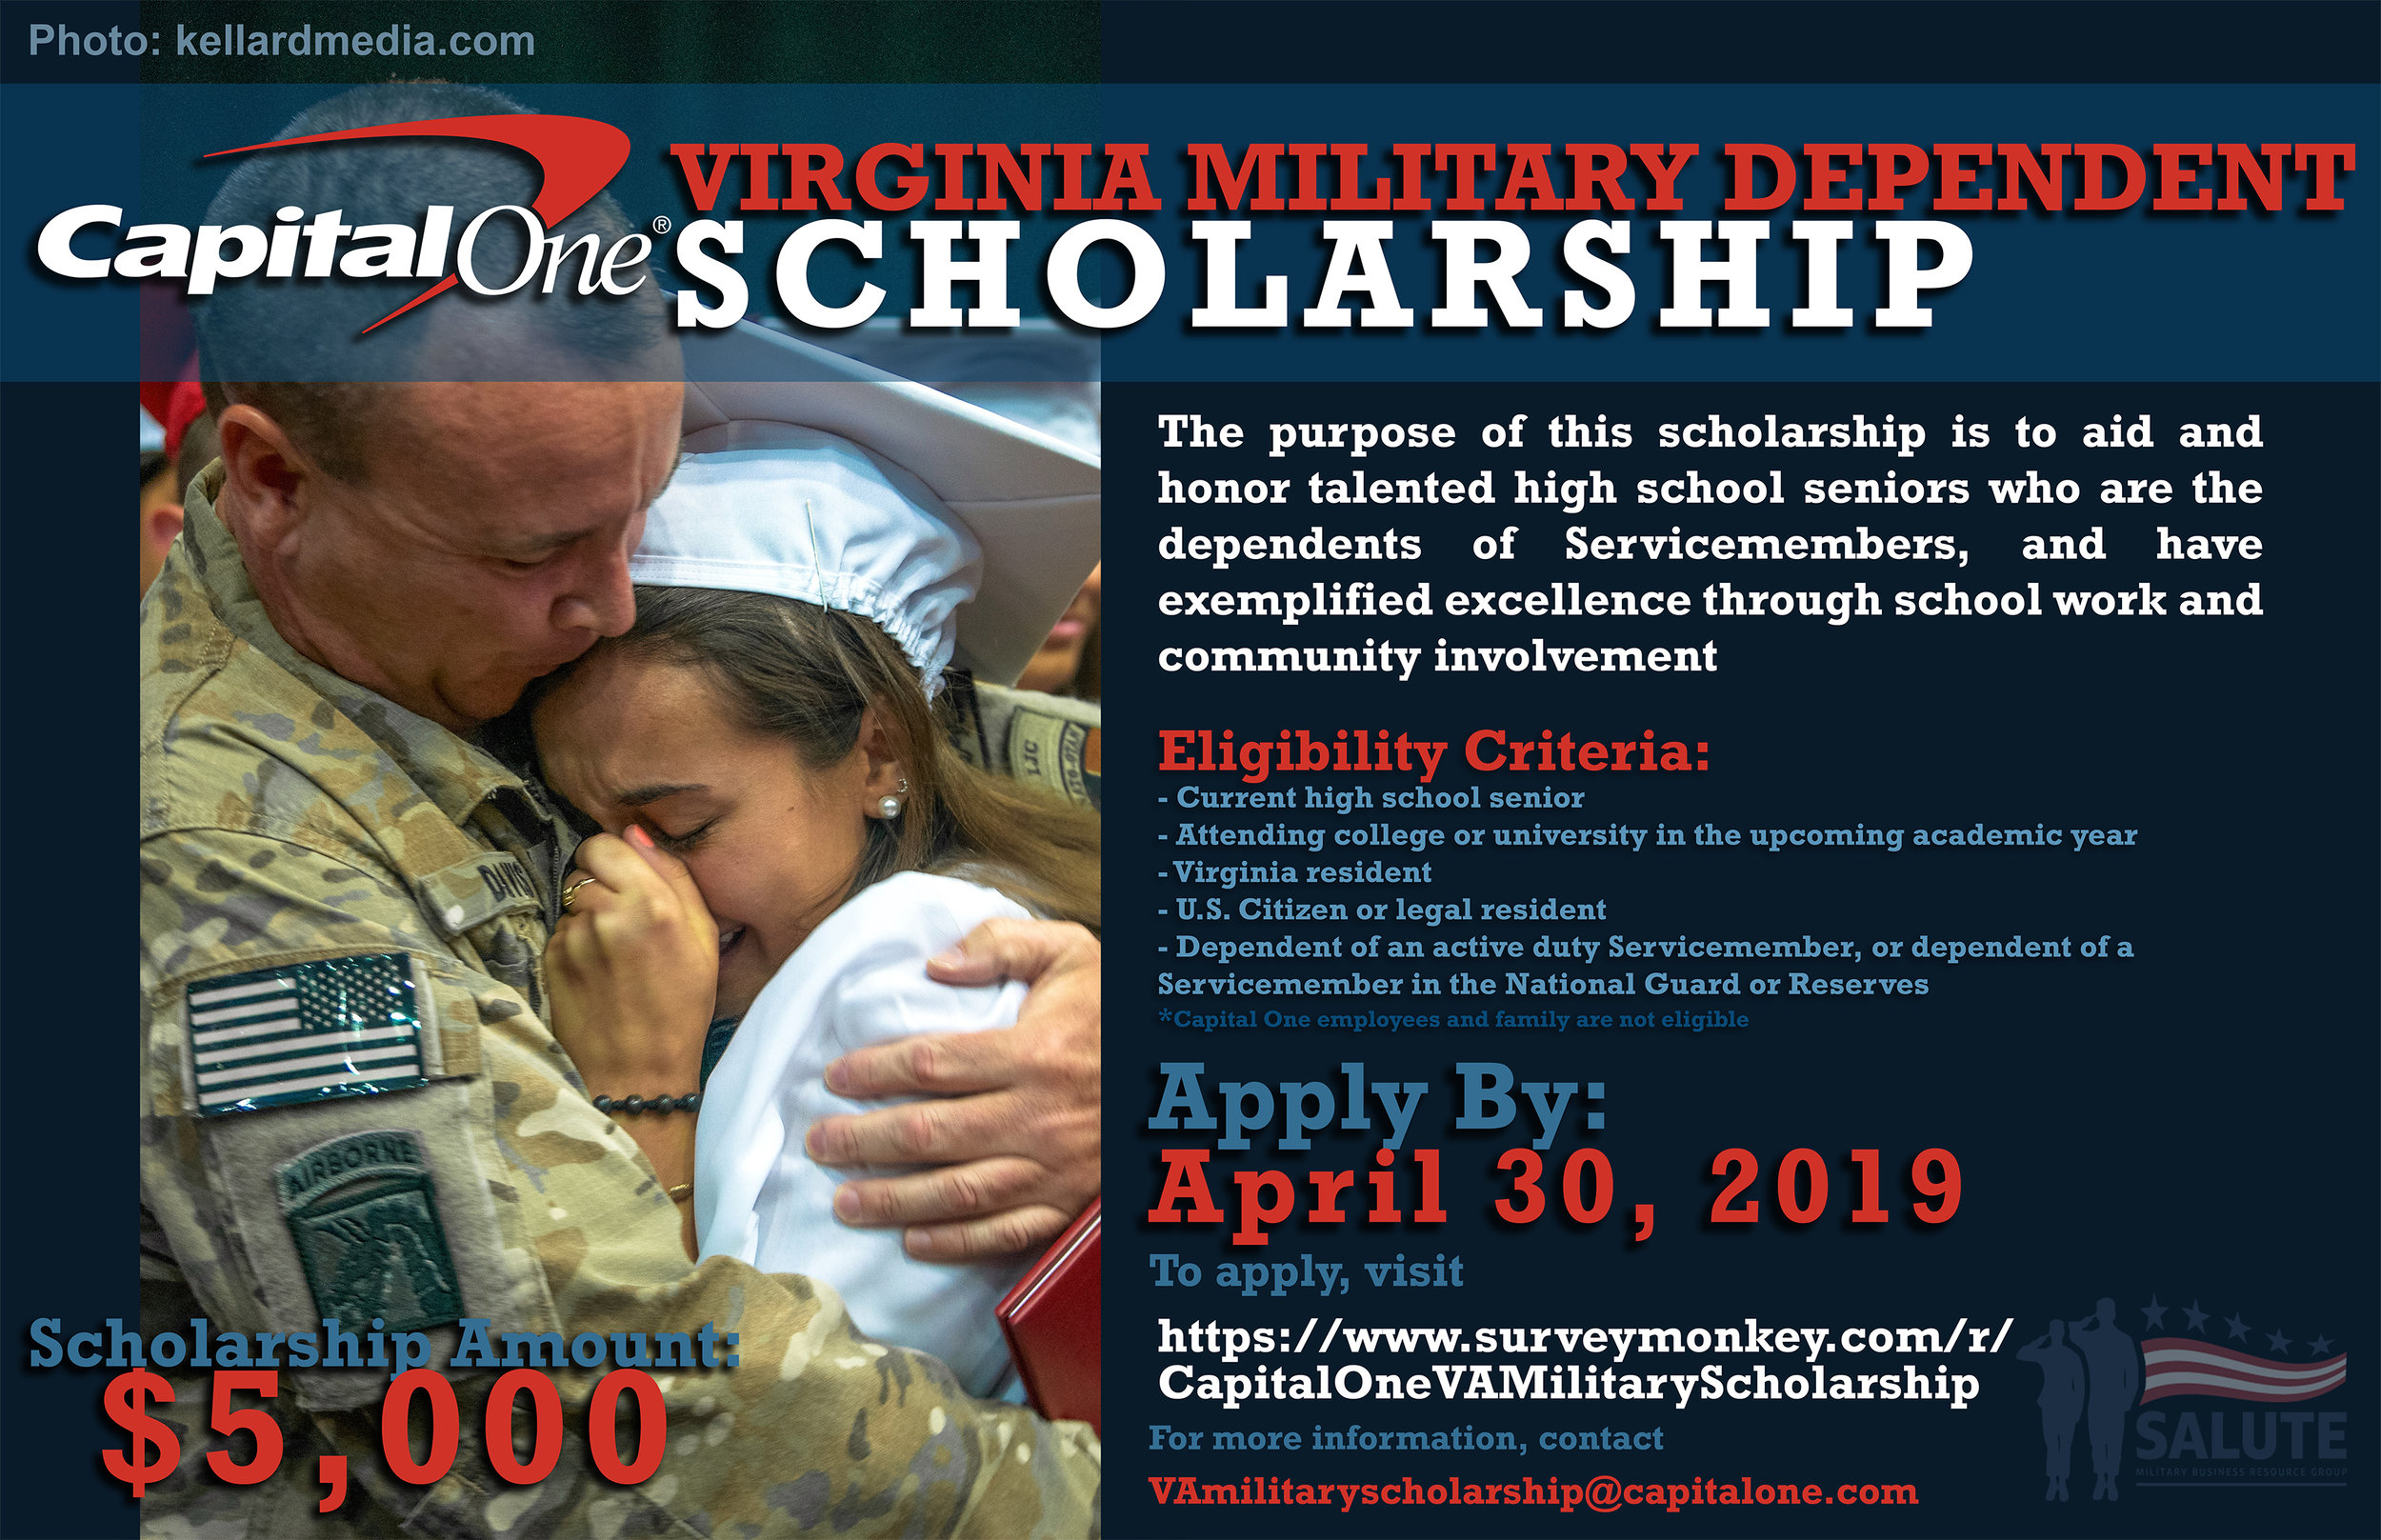 Capital One Scholarship Flyer.jpg